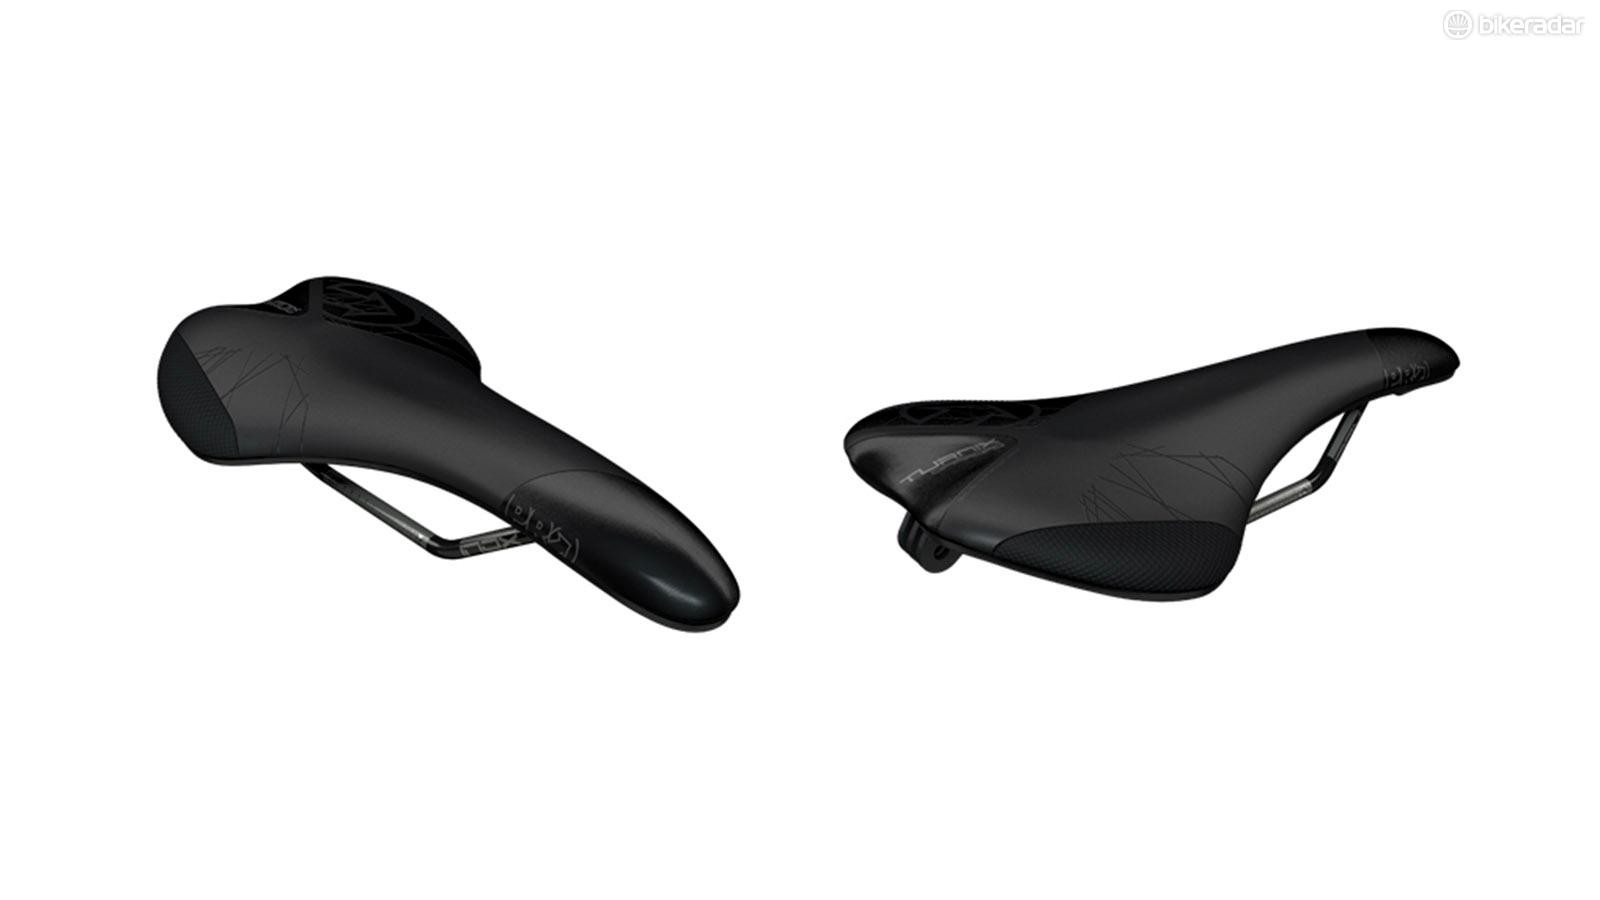 According to Pro, the Turnix saddle has a contoured profile with a wider tail for more flexible riders moving less on the saddle